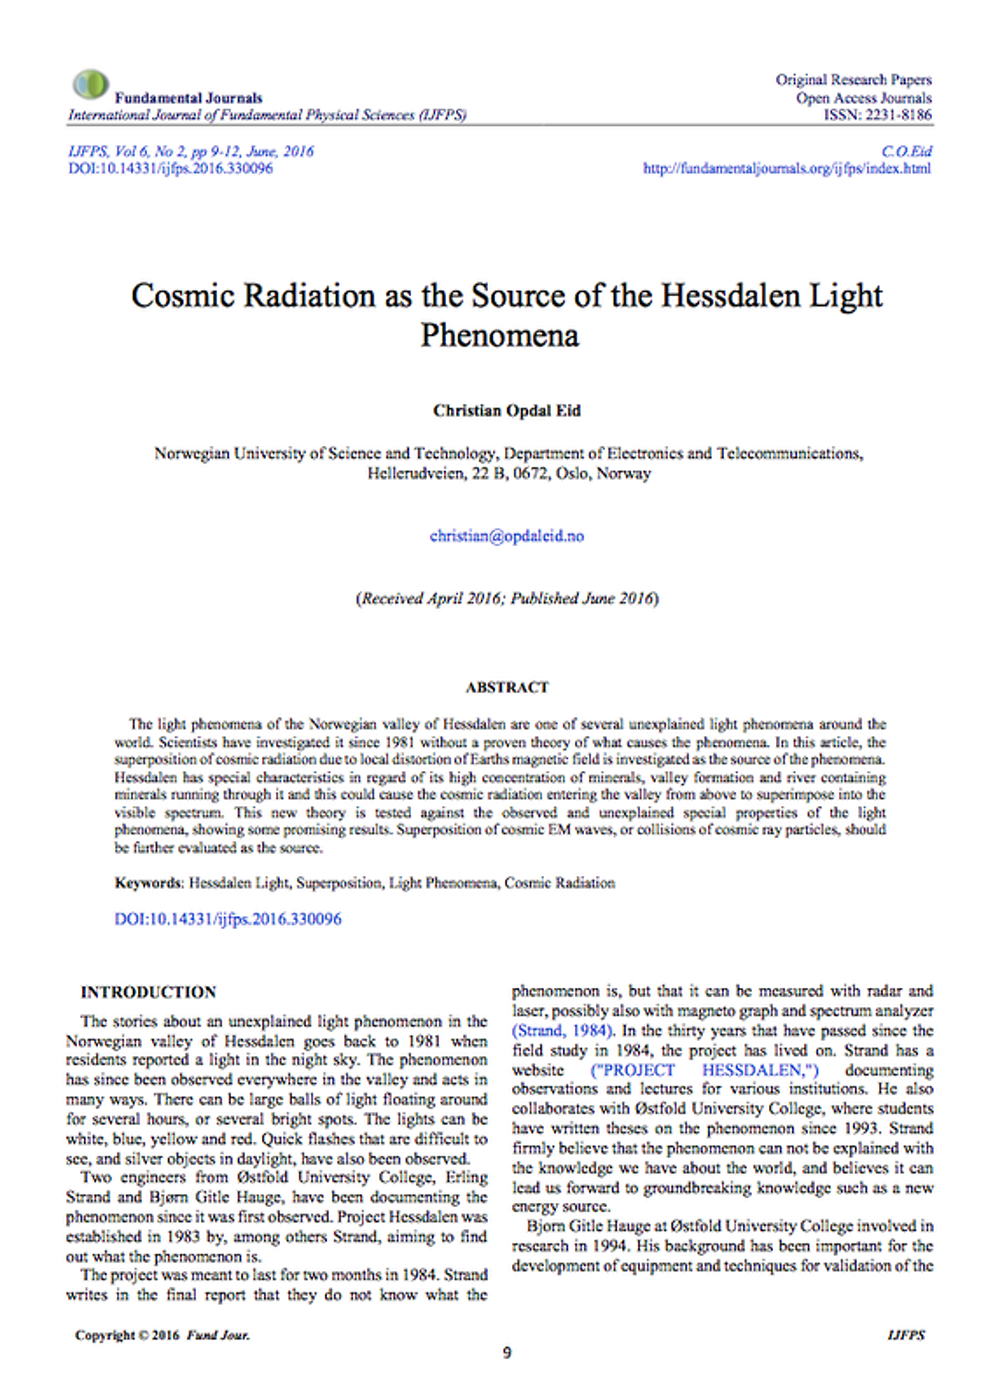 Theory - The Hessdalen Lights